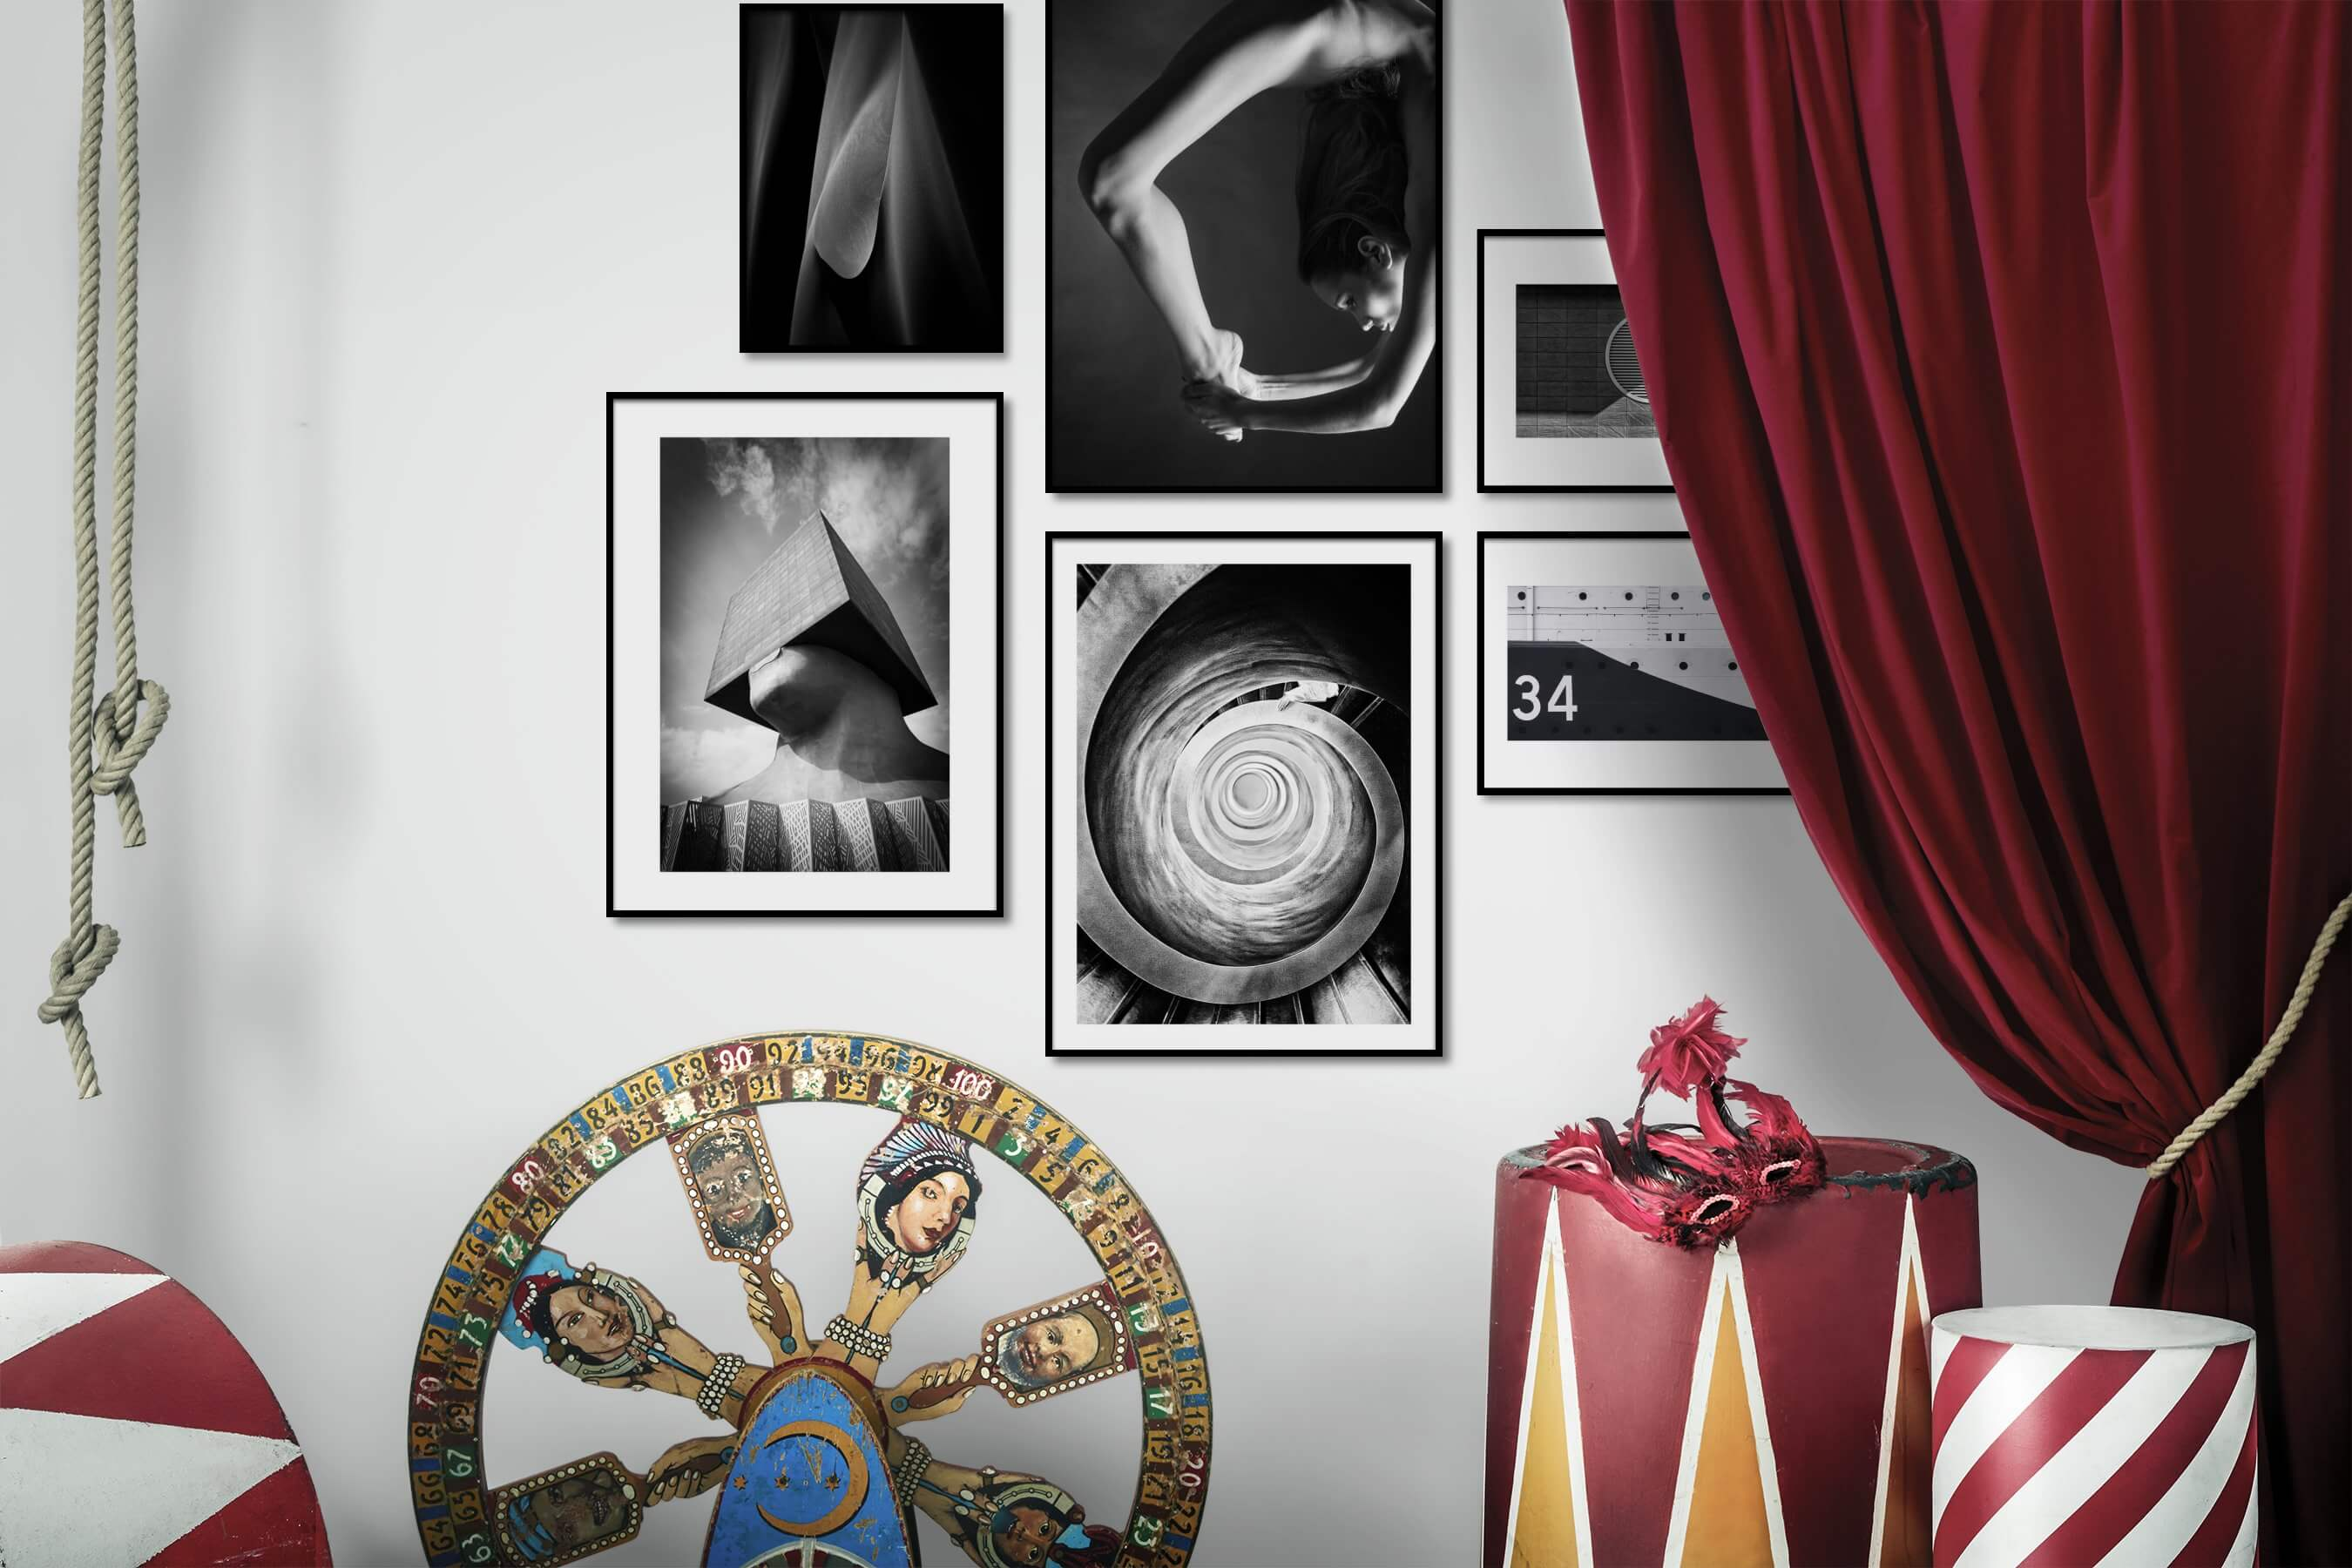 Gallery wall idea with six framed pictures arranged on a wall depicting Black & White, Dark Tones, For the Moderate, Nature, Fashion & Beauty, Artsy, For the Minimalist, and Vintage